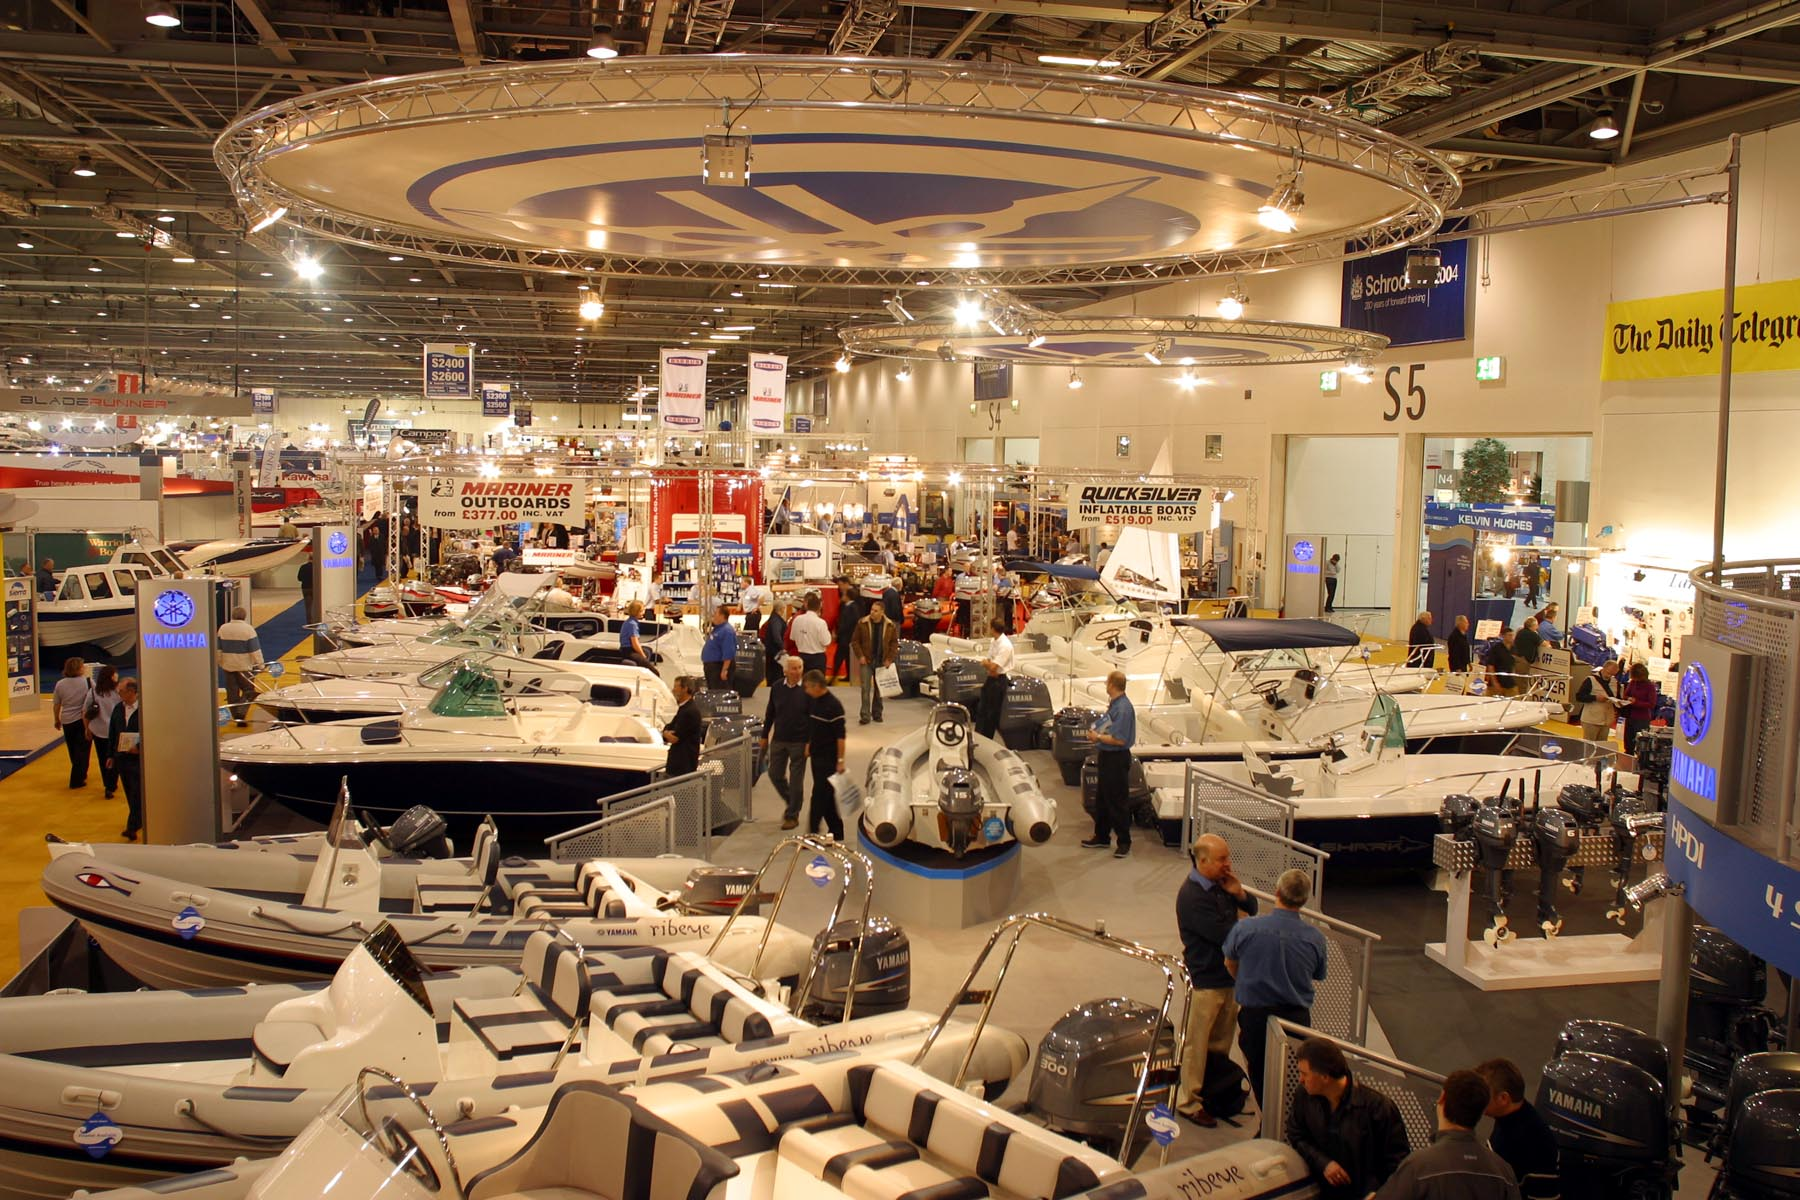 The London Boat Show and Outdoors Show will join forces